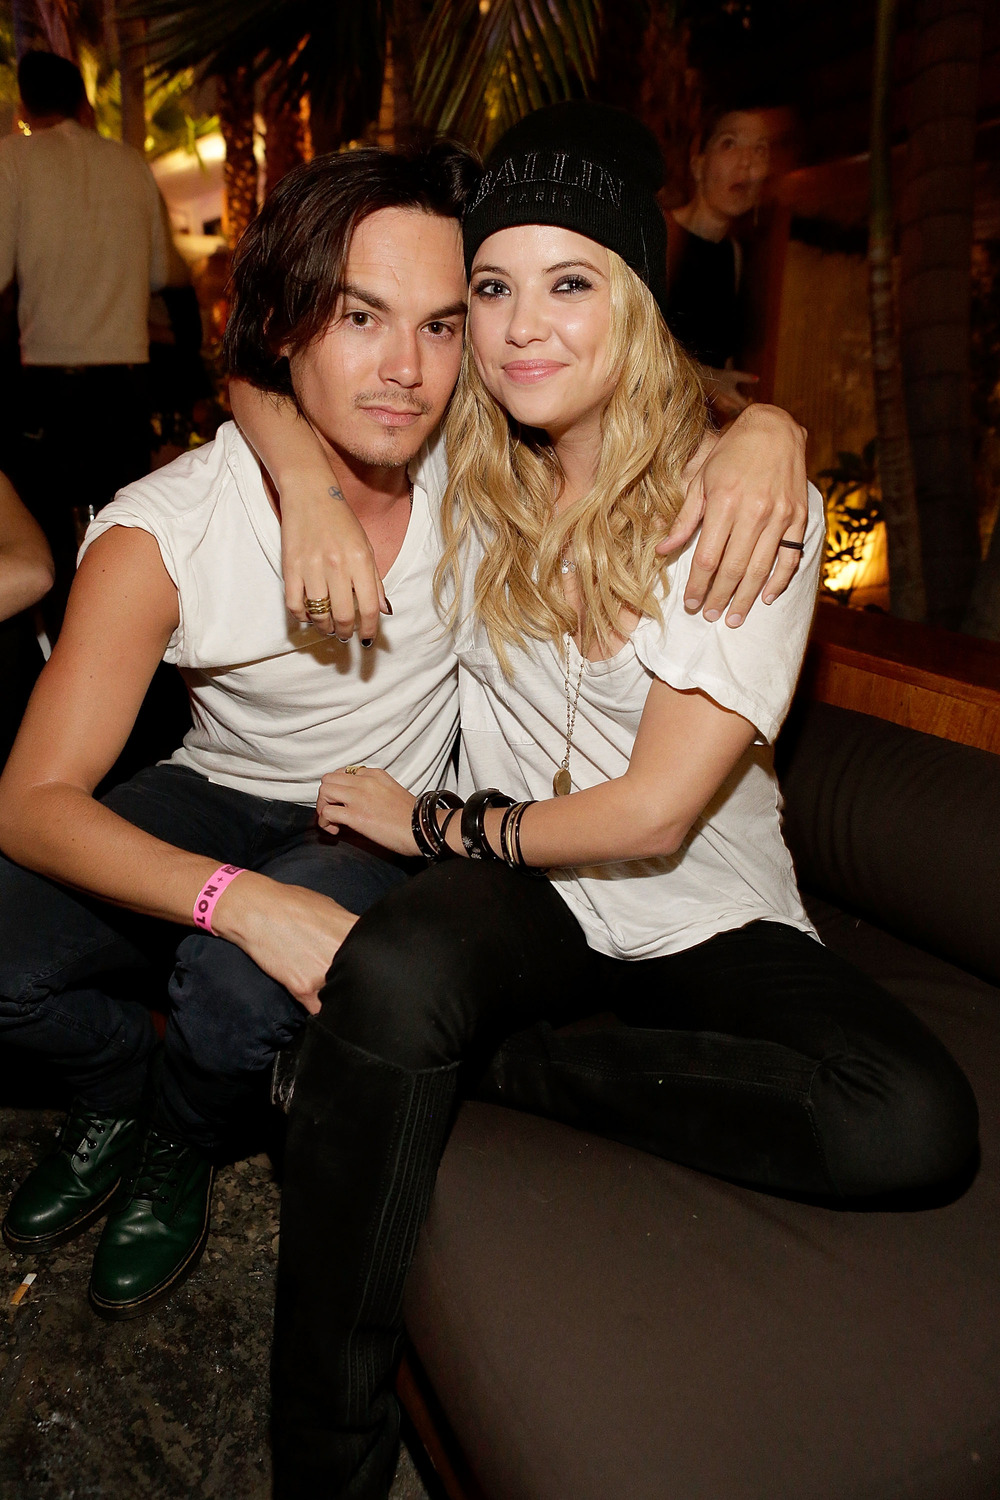 Who Is Ashley Benson Dating? Pretty Little Liars Star Says She's Single!